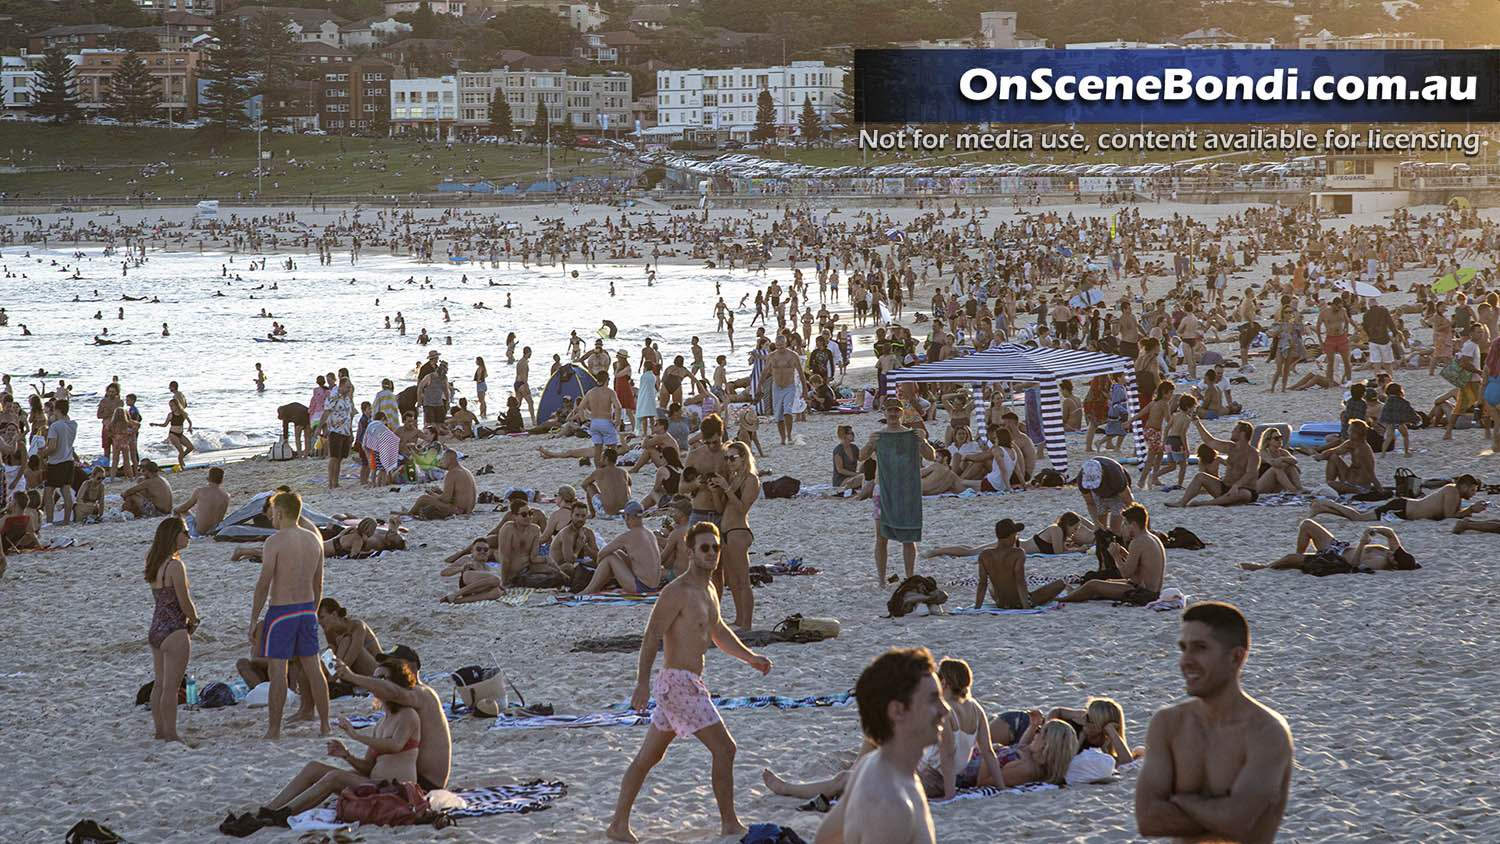 20200320 bondi beach crowd2